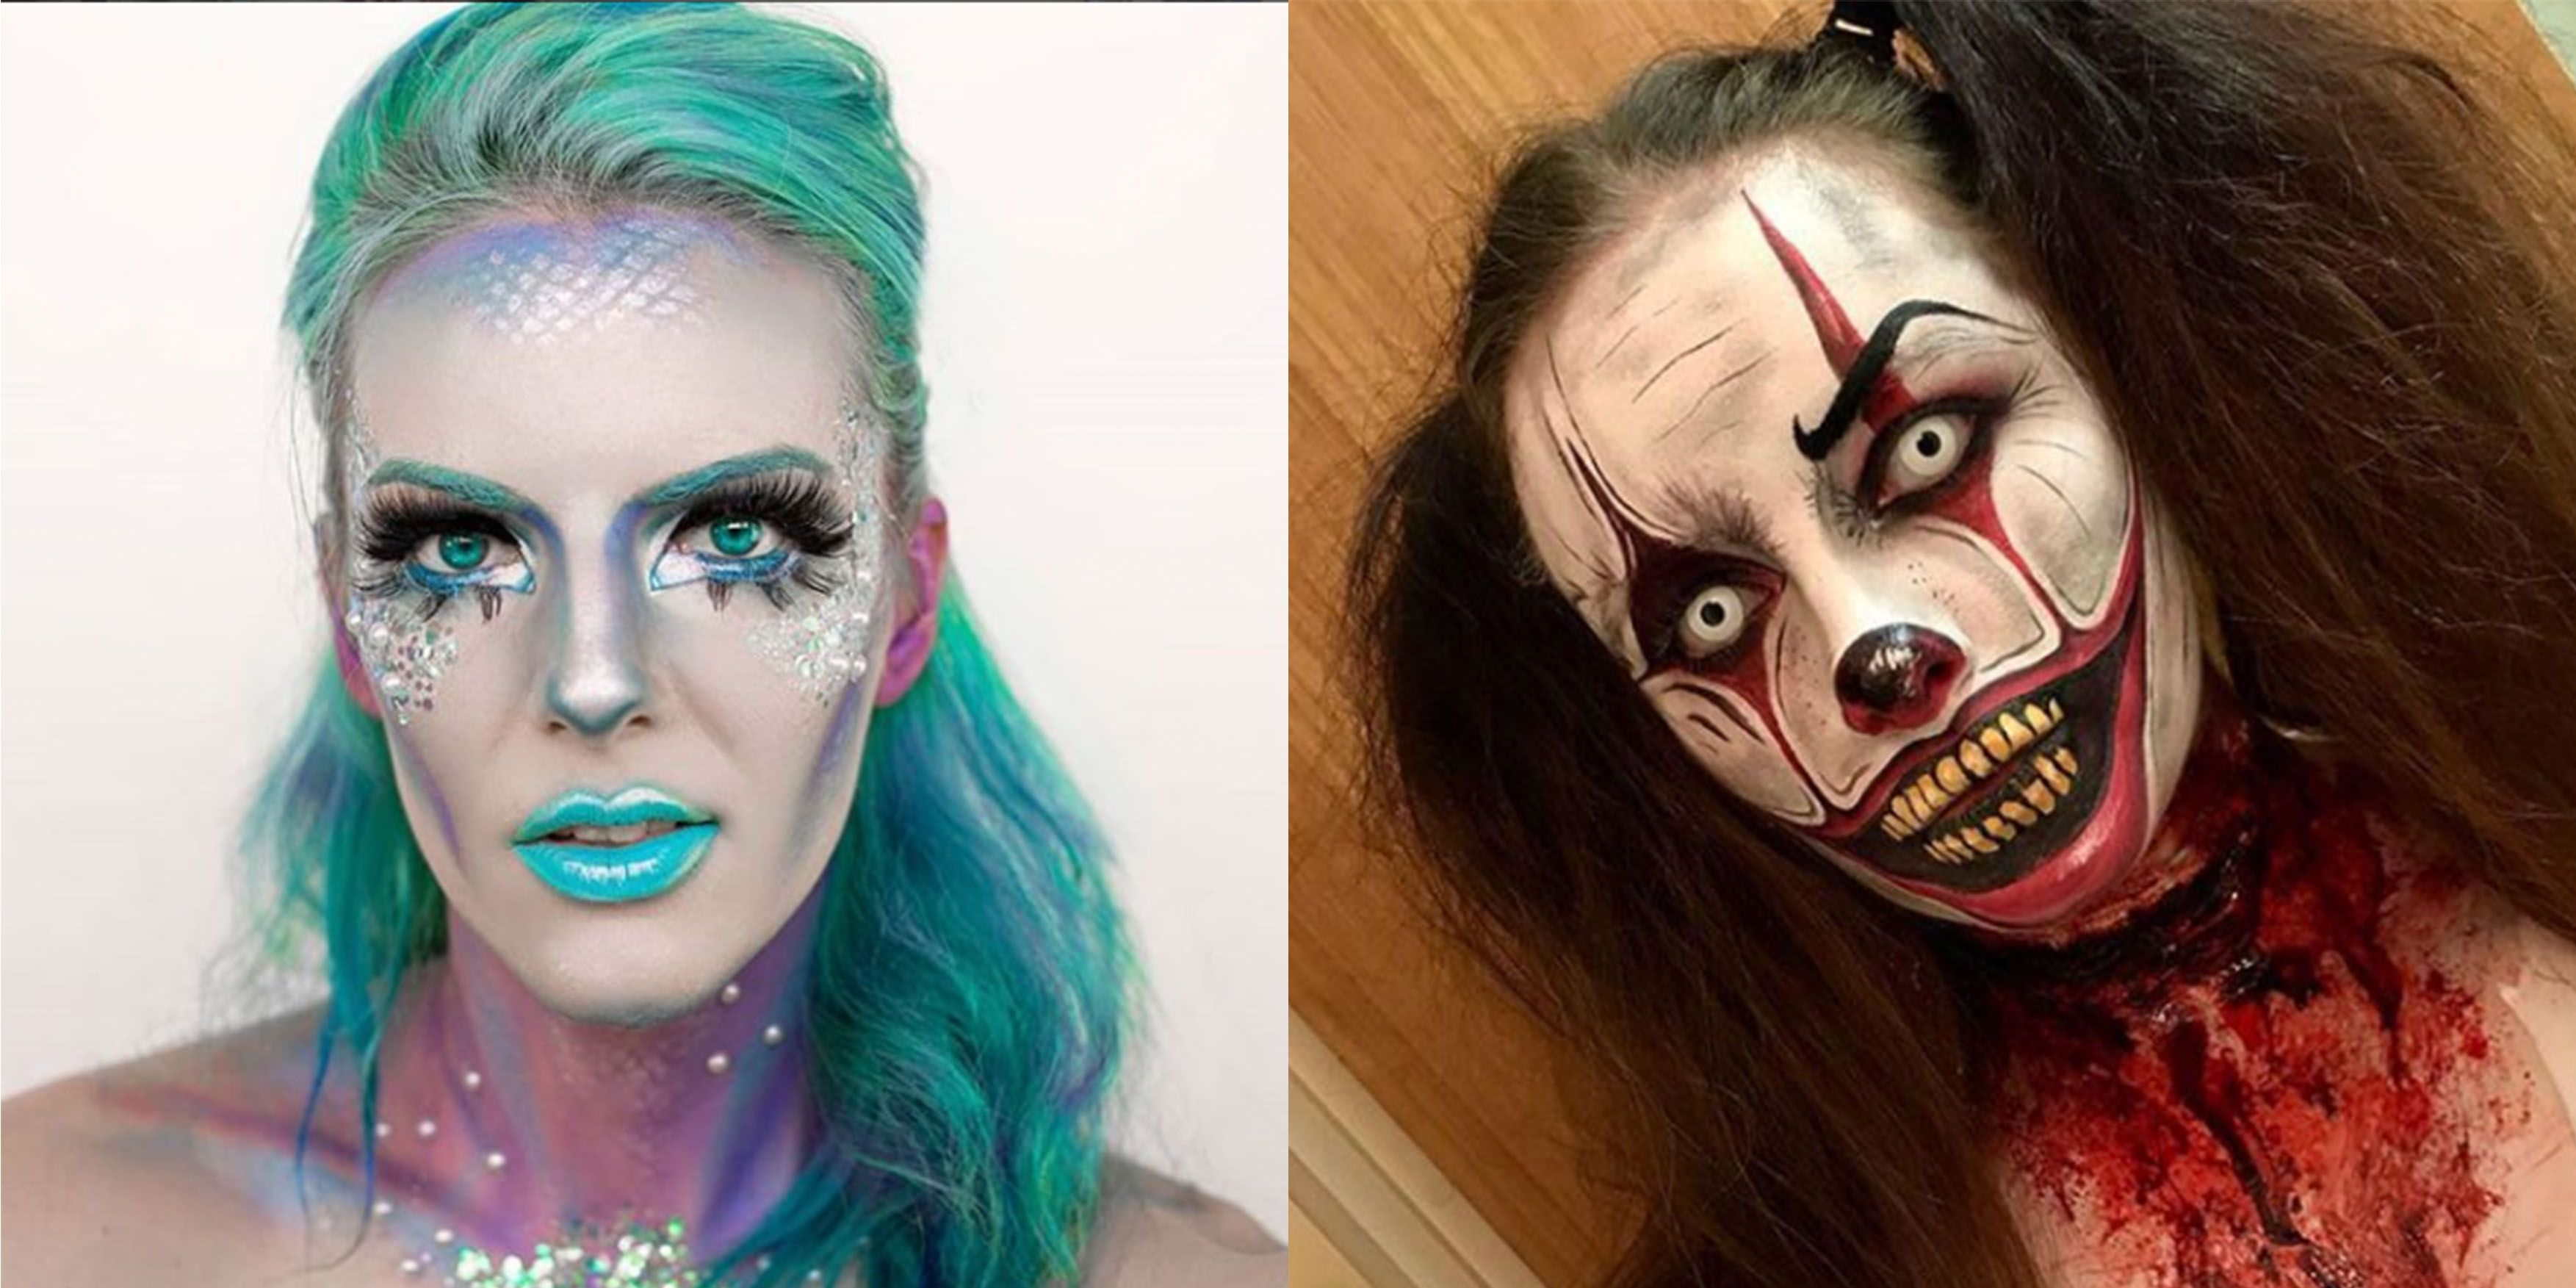 10 best halloween makeup kits for 2018 top costume makeup sets 10 best halloween makeup kits for 2018 top costume makeup sets for halloween solutioingenieria Image collections